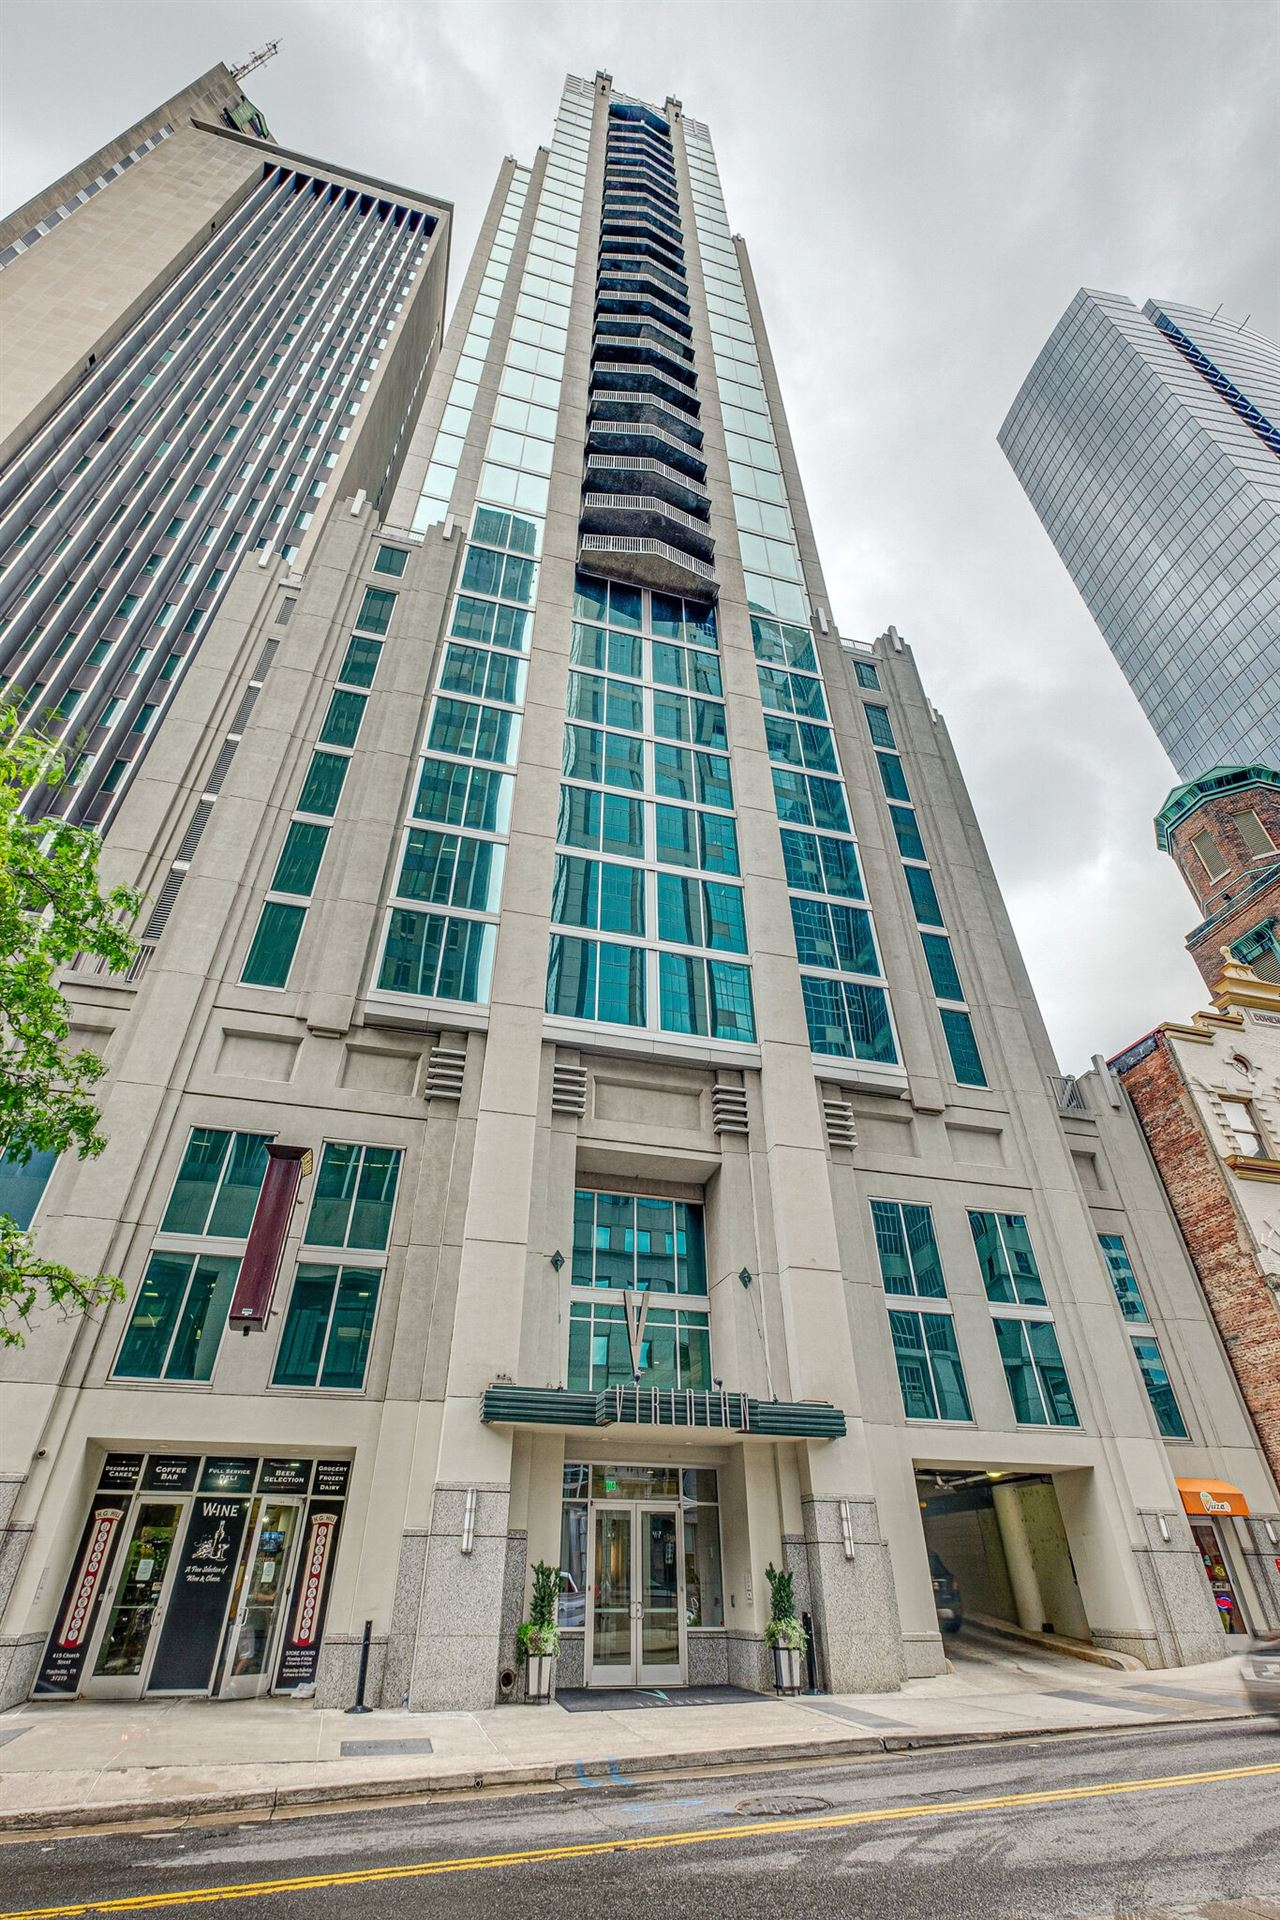 Photo of 415 Church St #1601, Nashville, TN 37219 (MLS # 2235061)